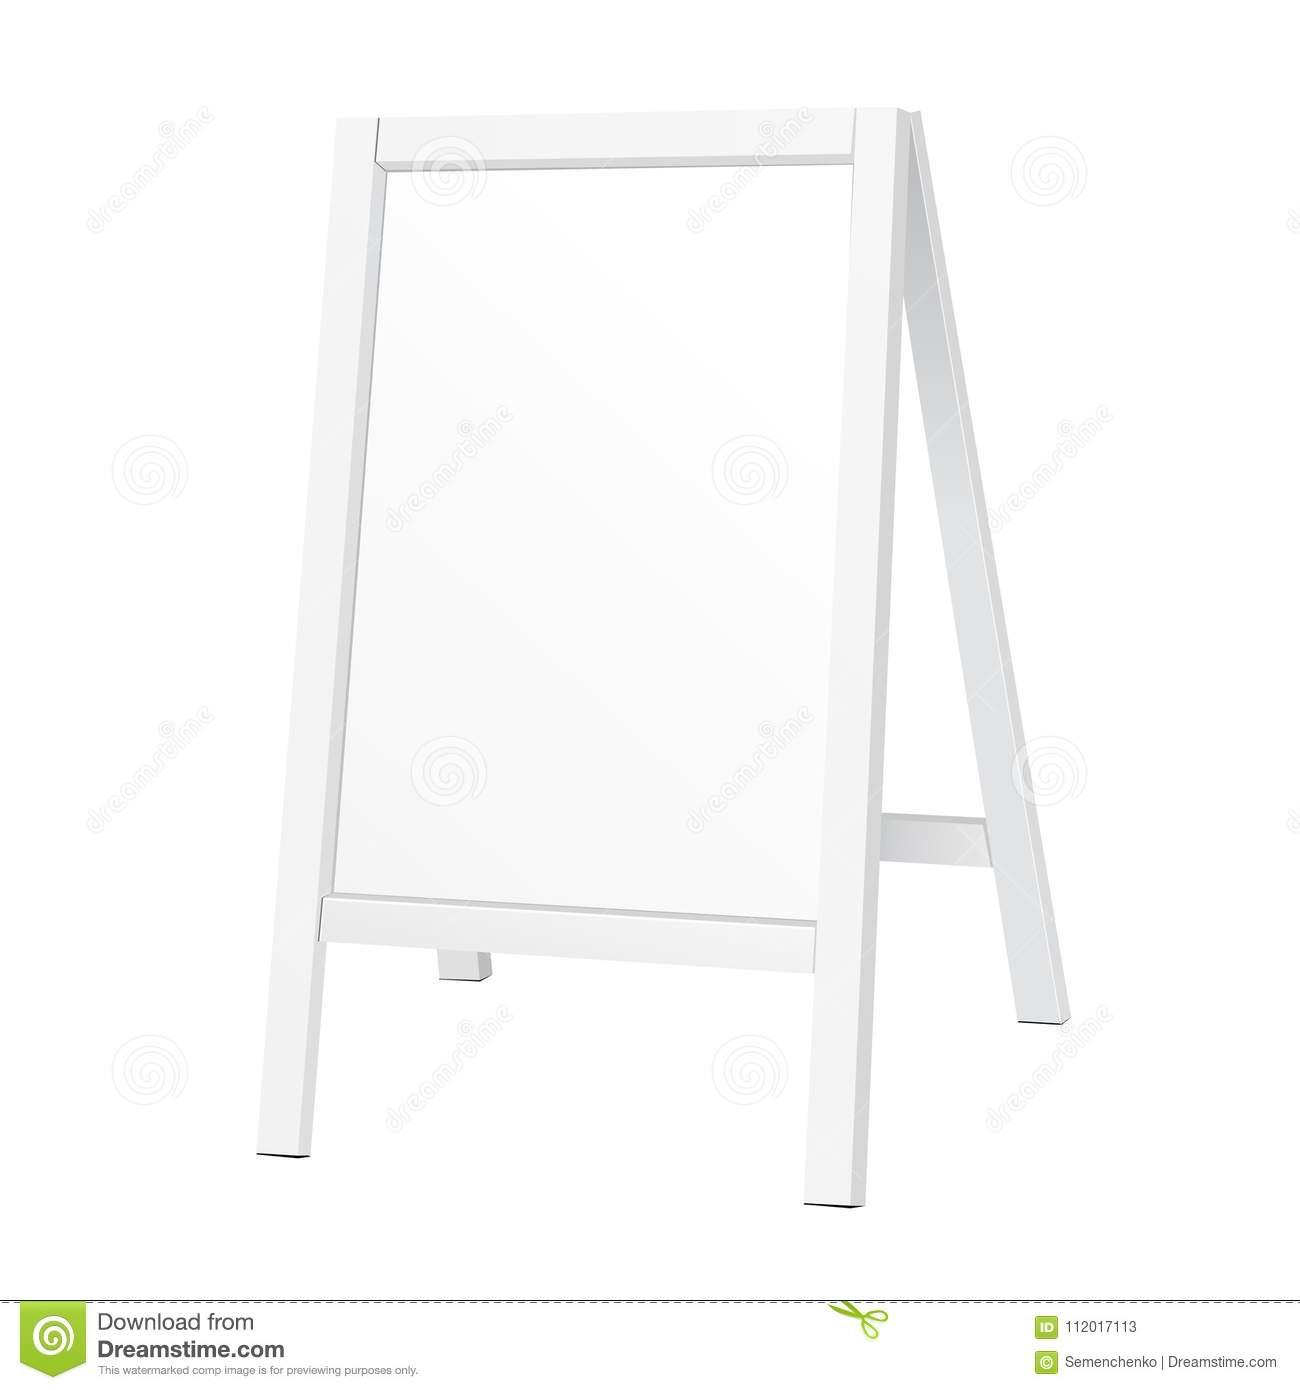 Outdoor Indoor Stander Advertising Stand Banner Shield Display, Advertising. Illustration Isolated.